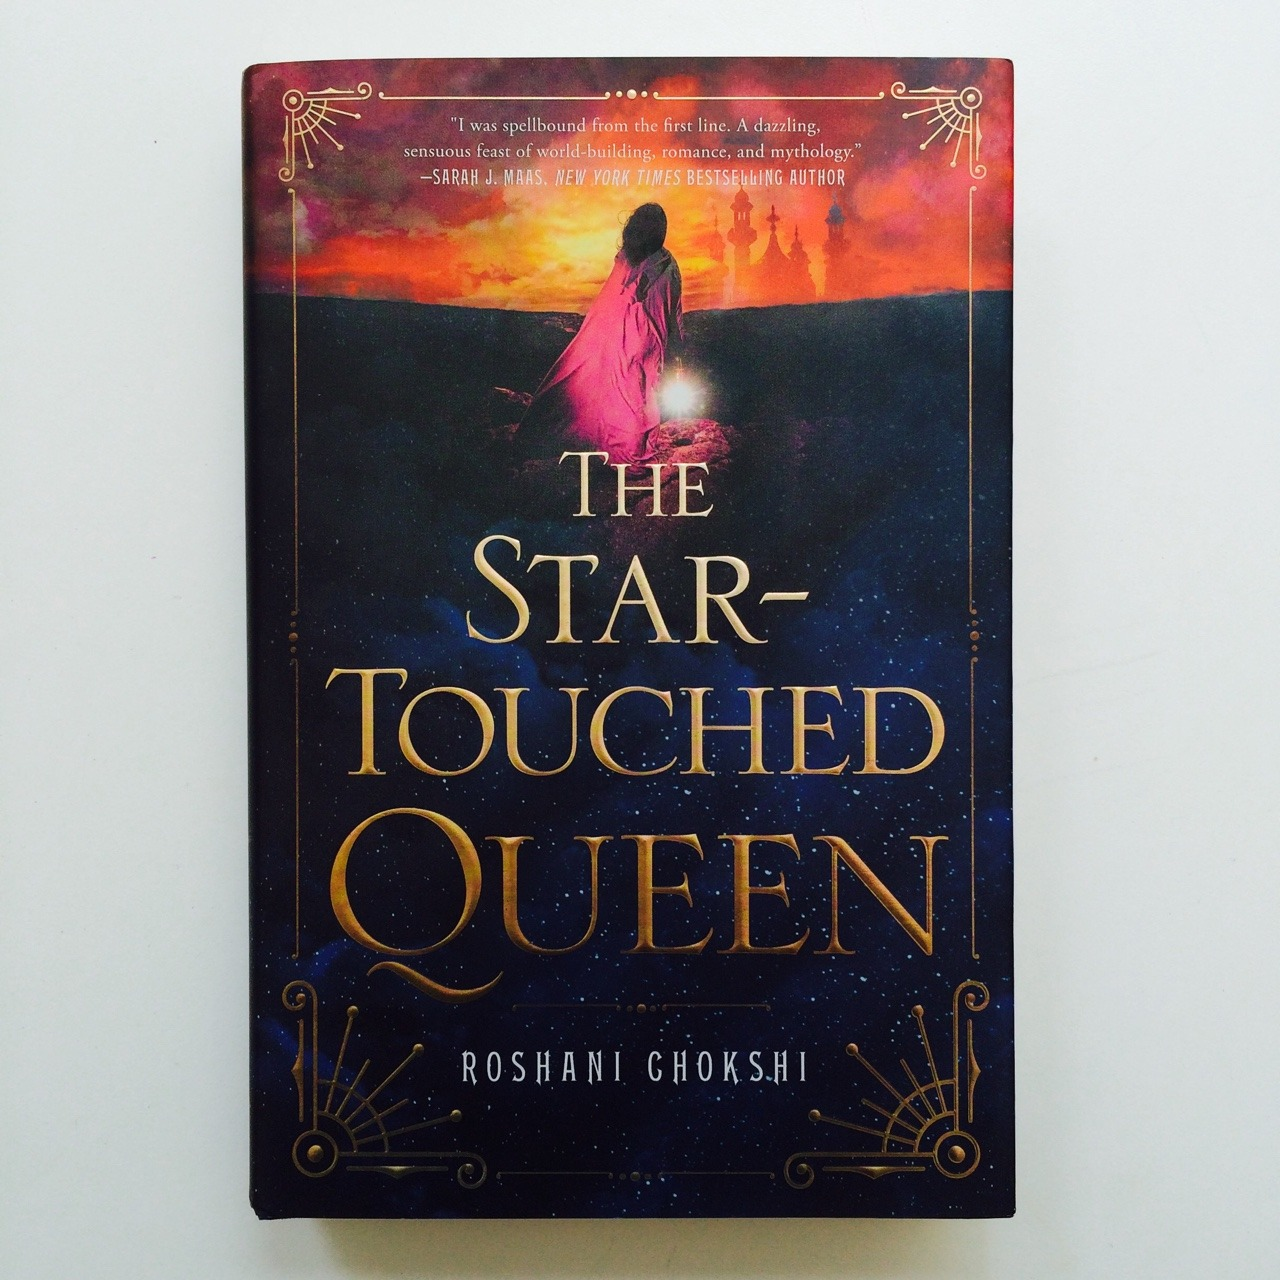 THE STAR-TOUCHED QUEEN by Roshani Chokshi -